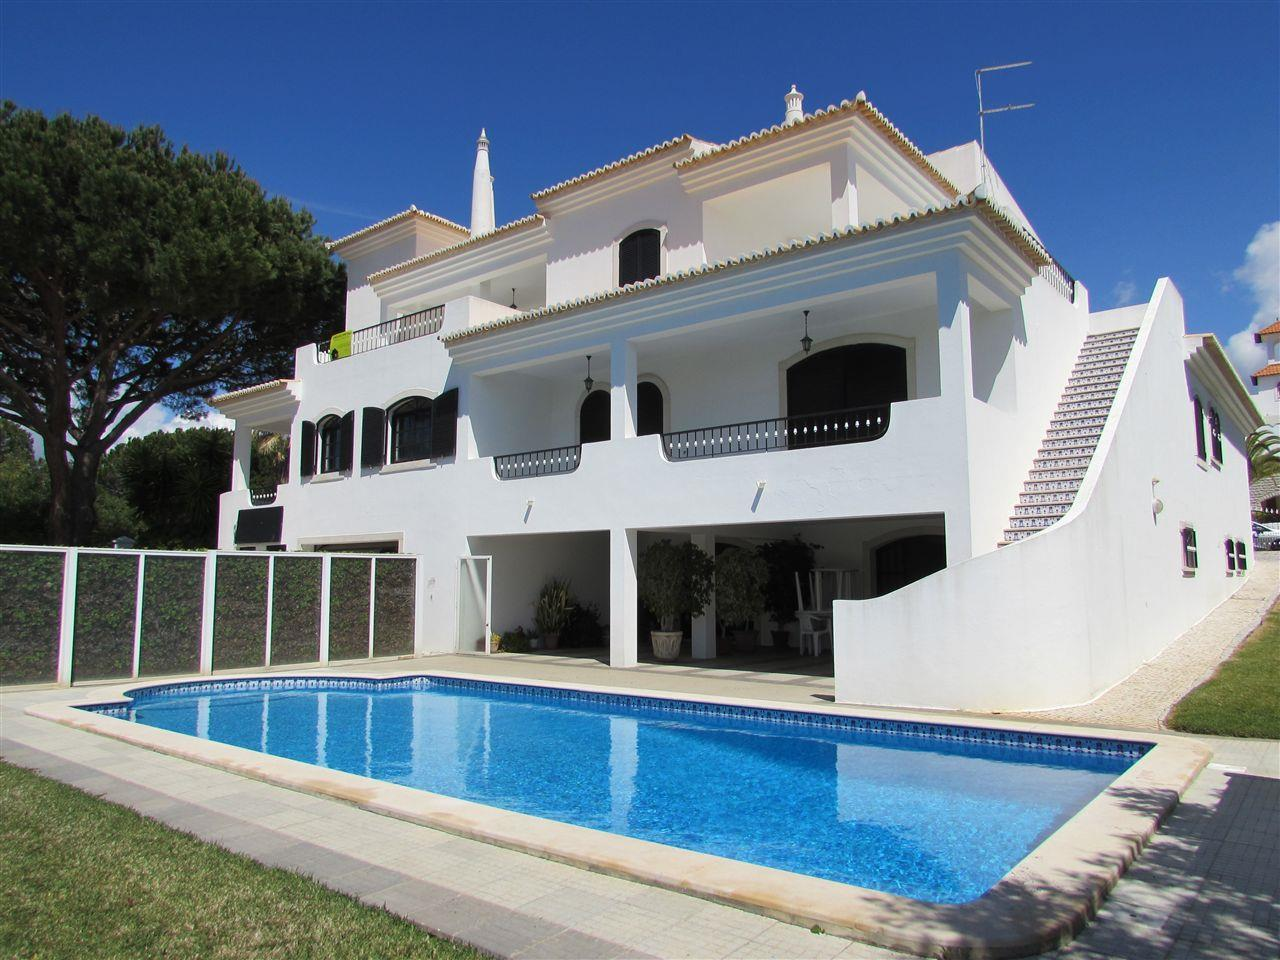 Moradia para Venda às Detached house, 7 bedrooms, for Sale Loule, Algarve Portugal